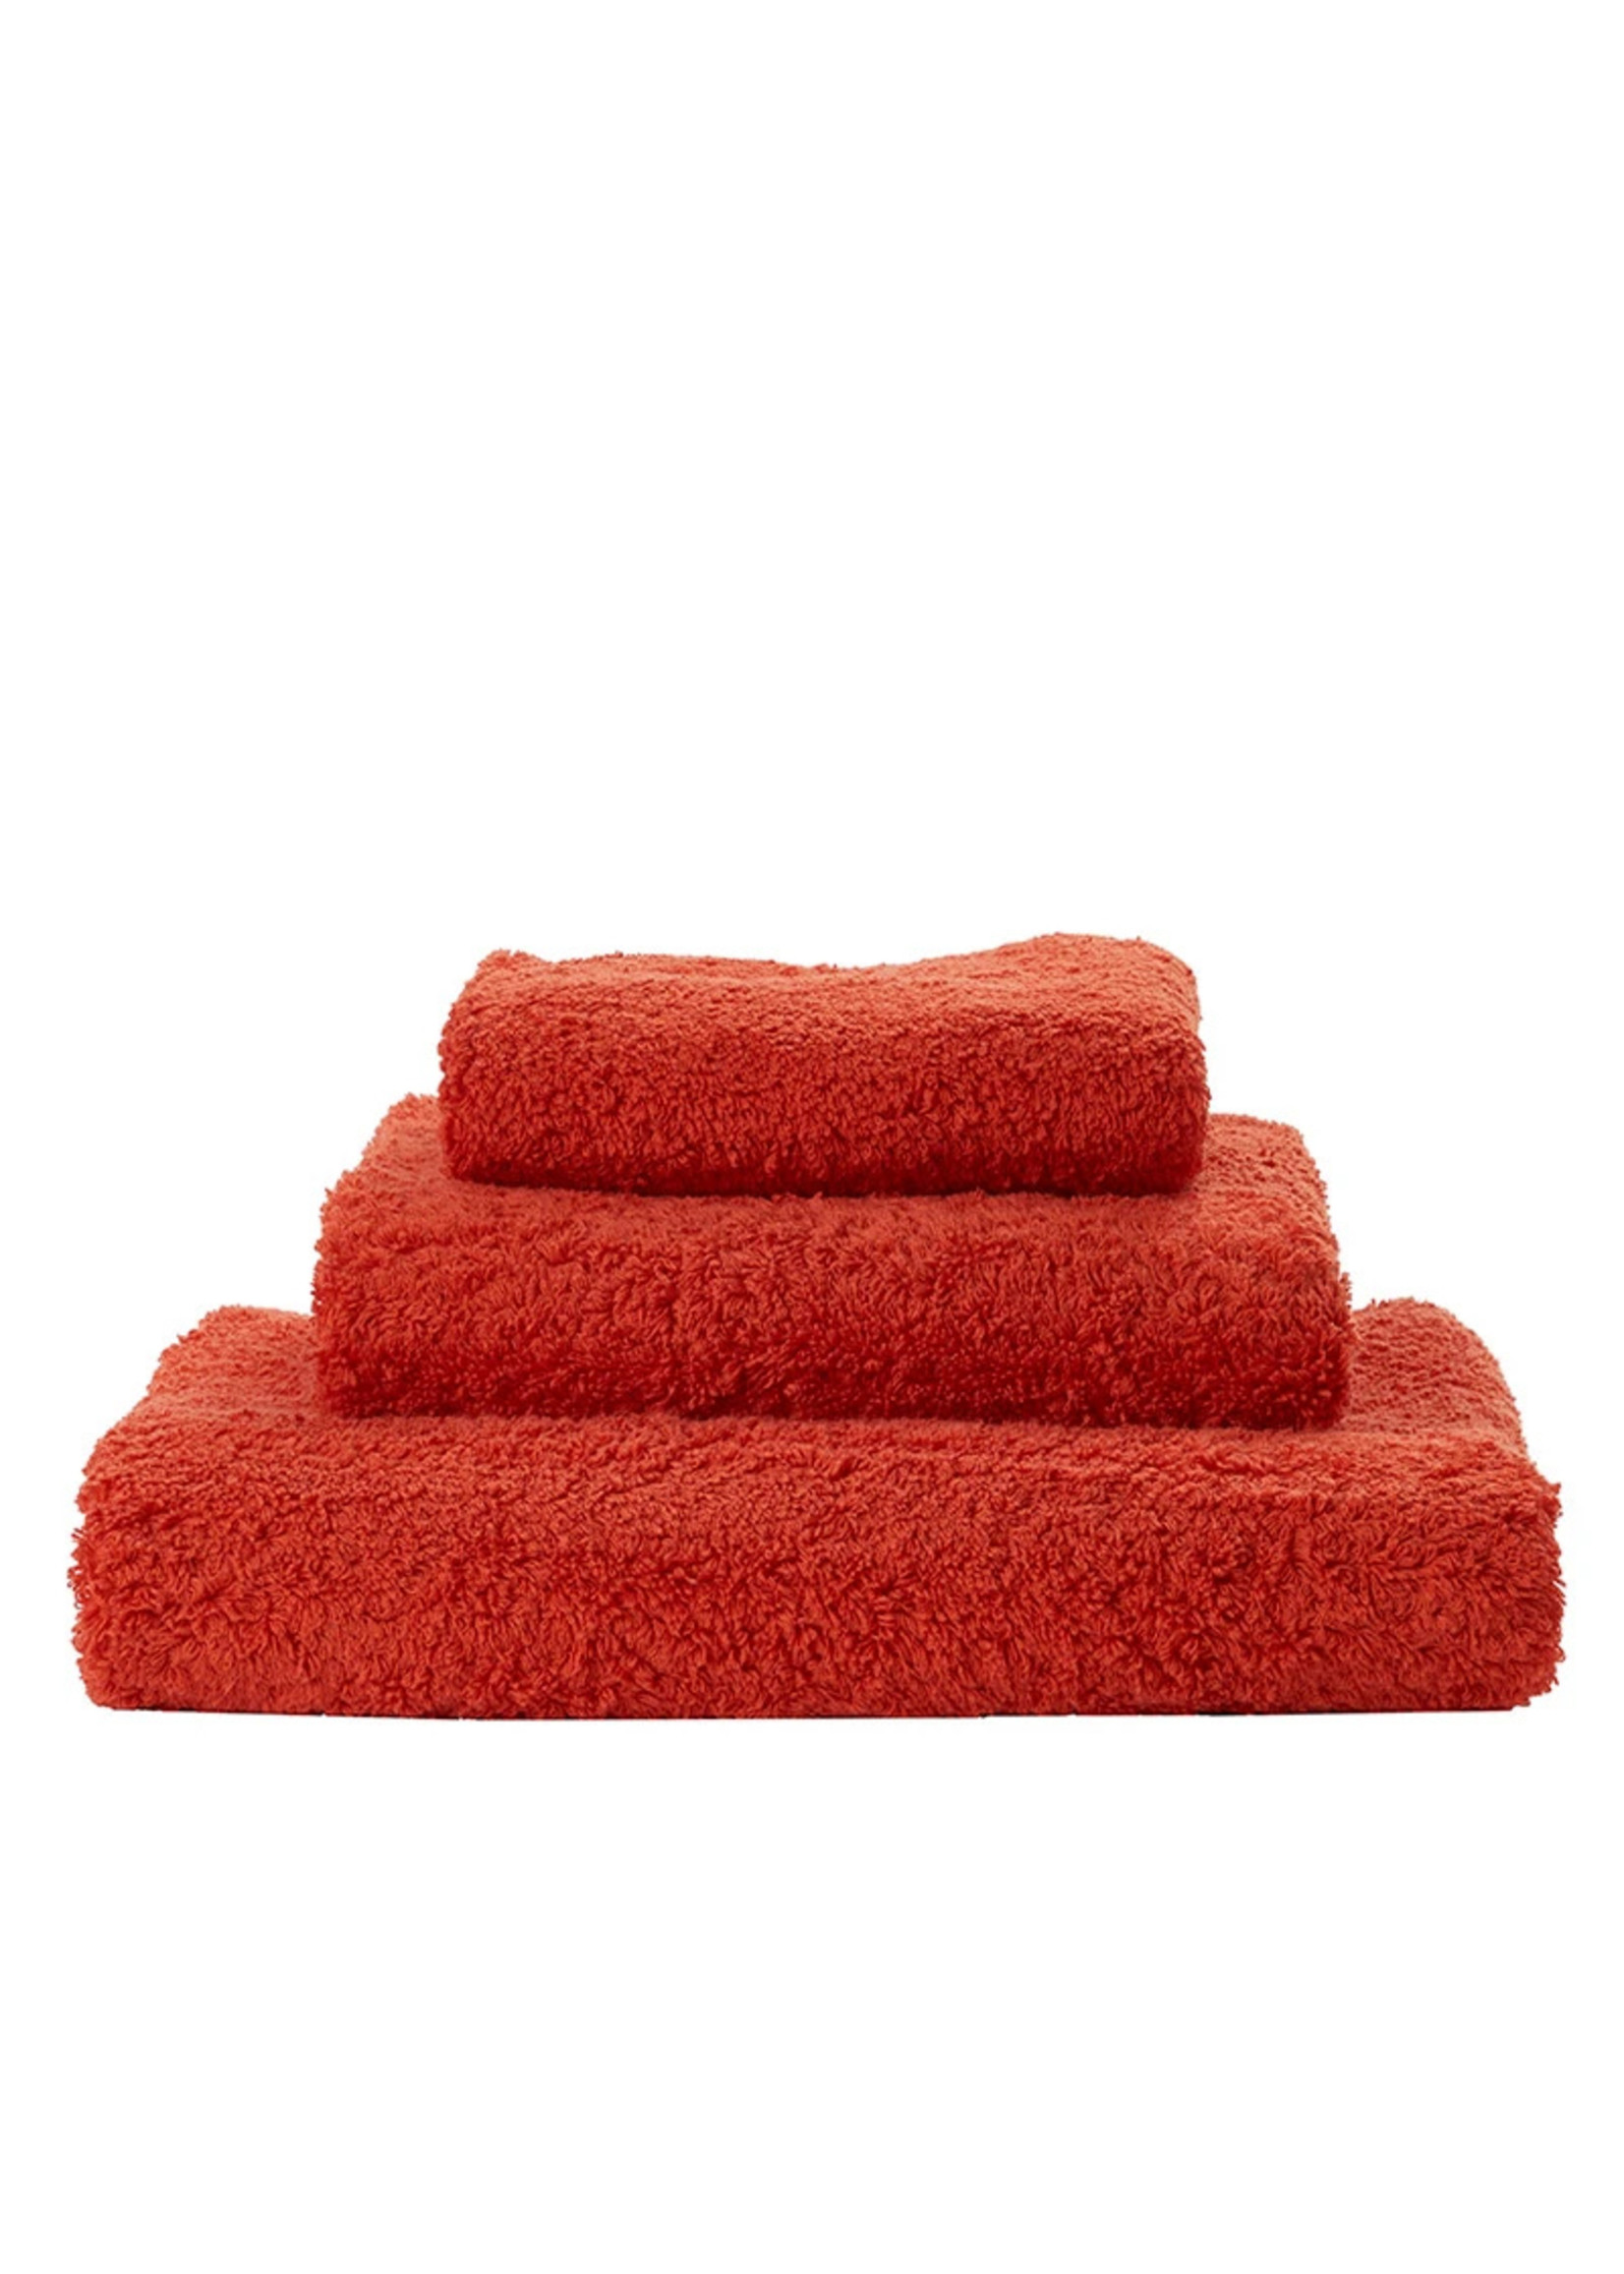 Abyss & Habidecor Super Pile Spicy Towels